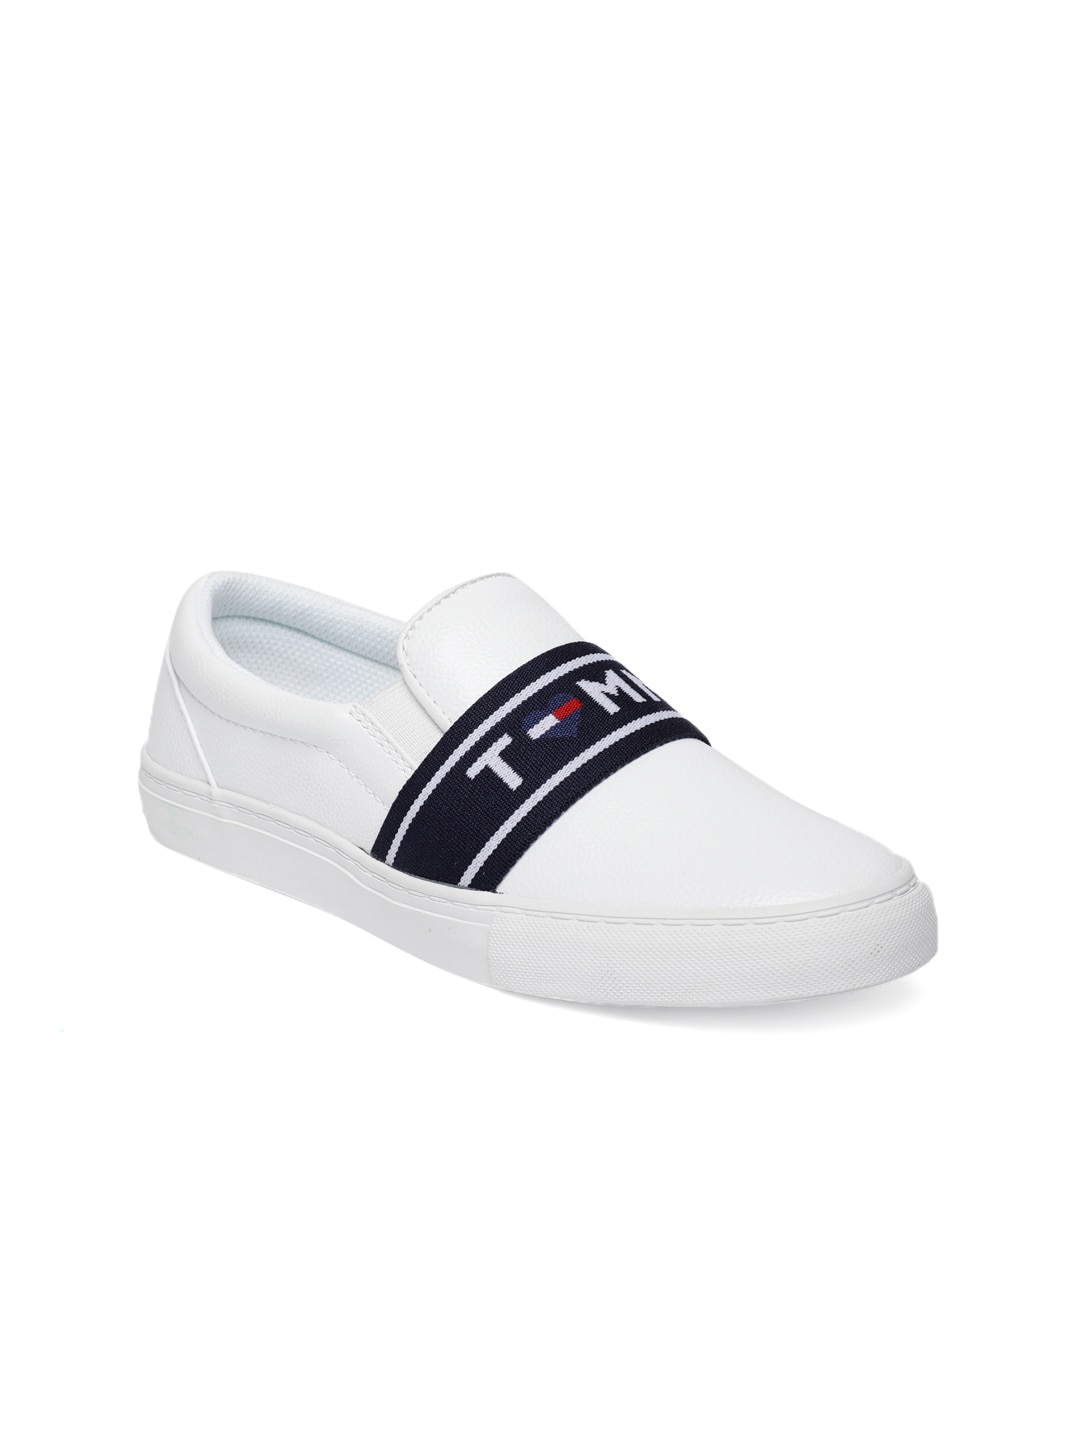 f130a1579 Tommy Hilfiger Shoes For Women - Buy Tommy Hilfiger Shoes For Women online  in India